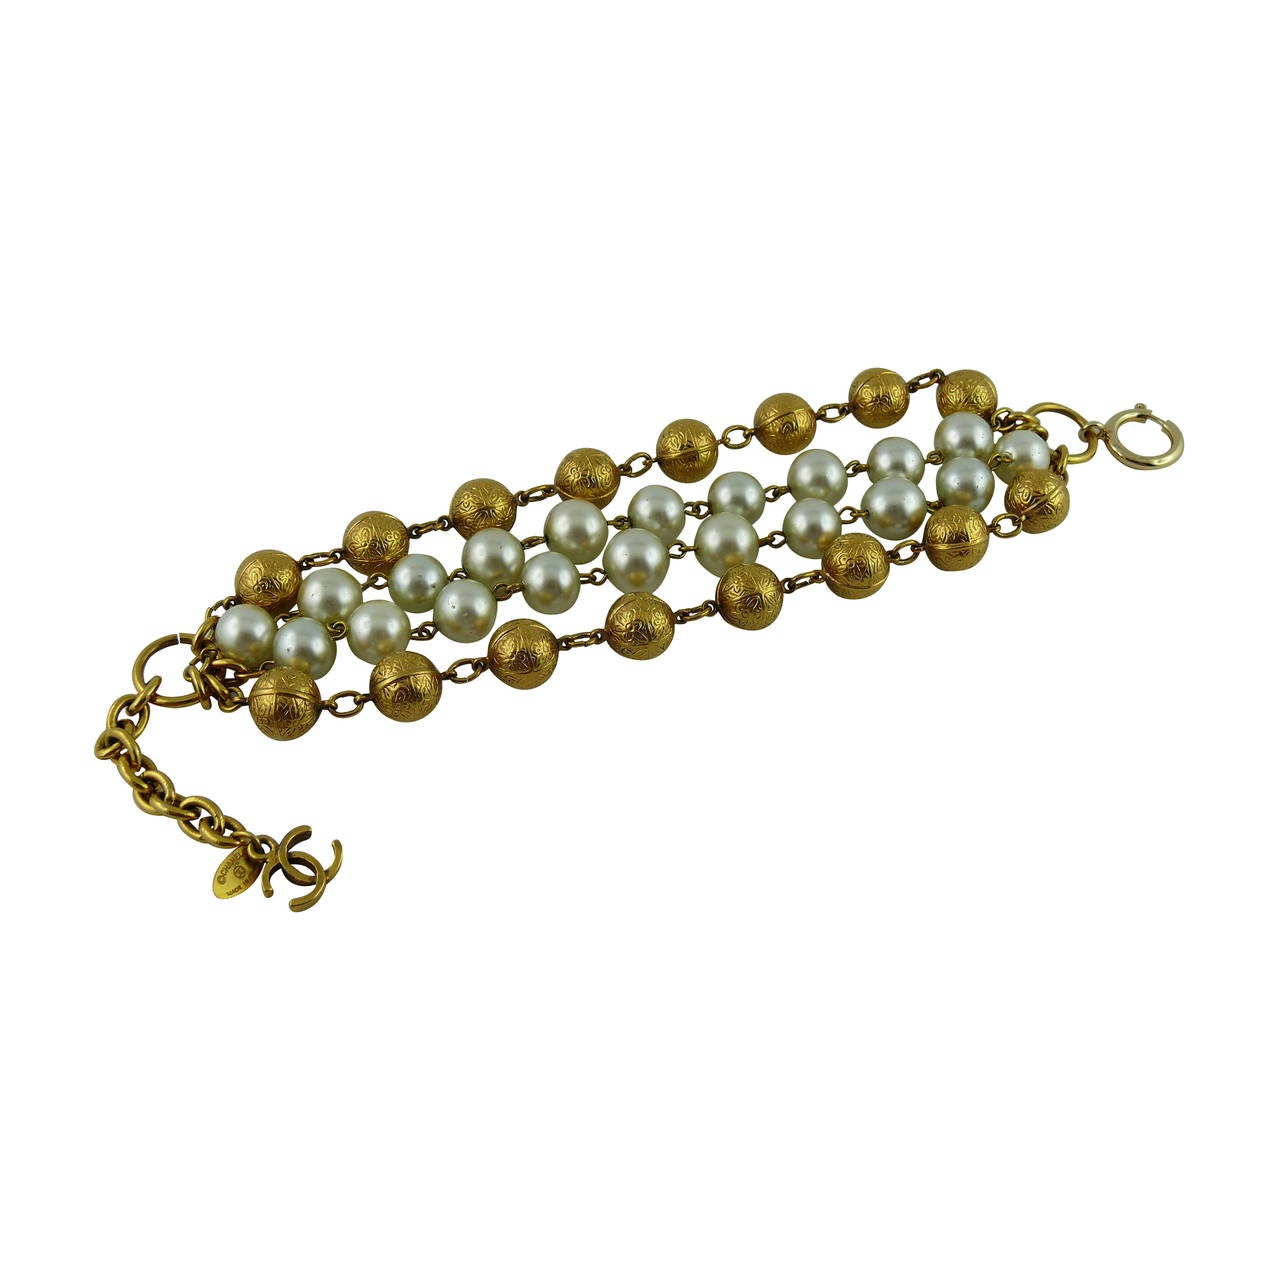 claiborne liz beads single with clasp product trim strand navy vintage long pearls beautiful gold and faux